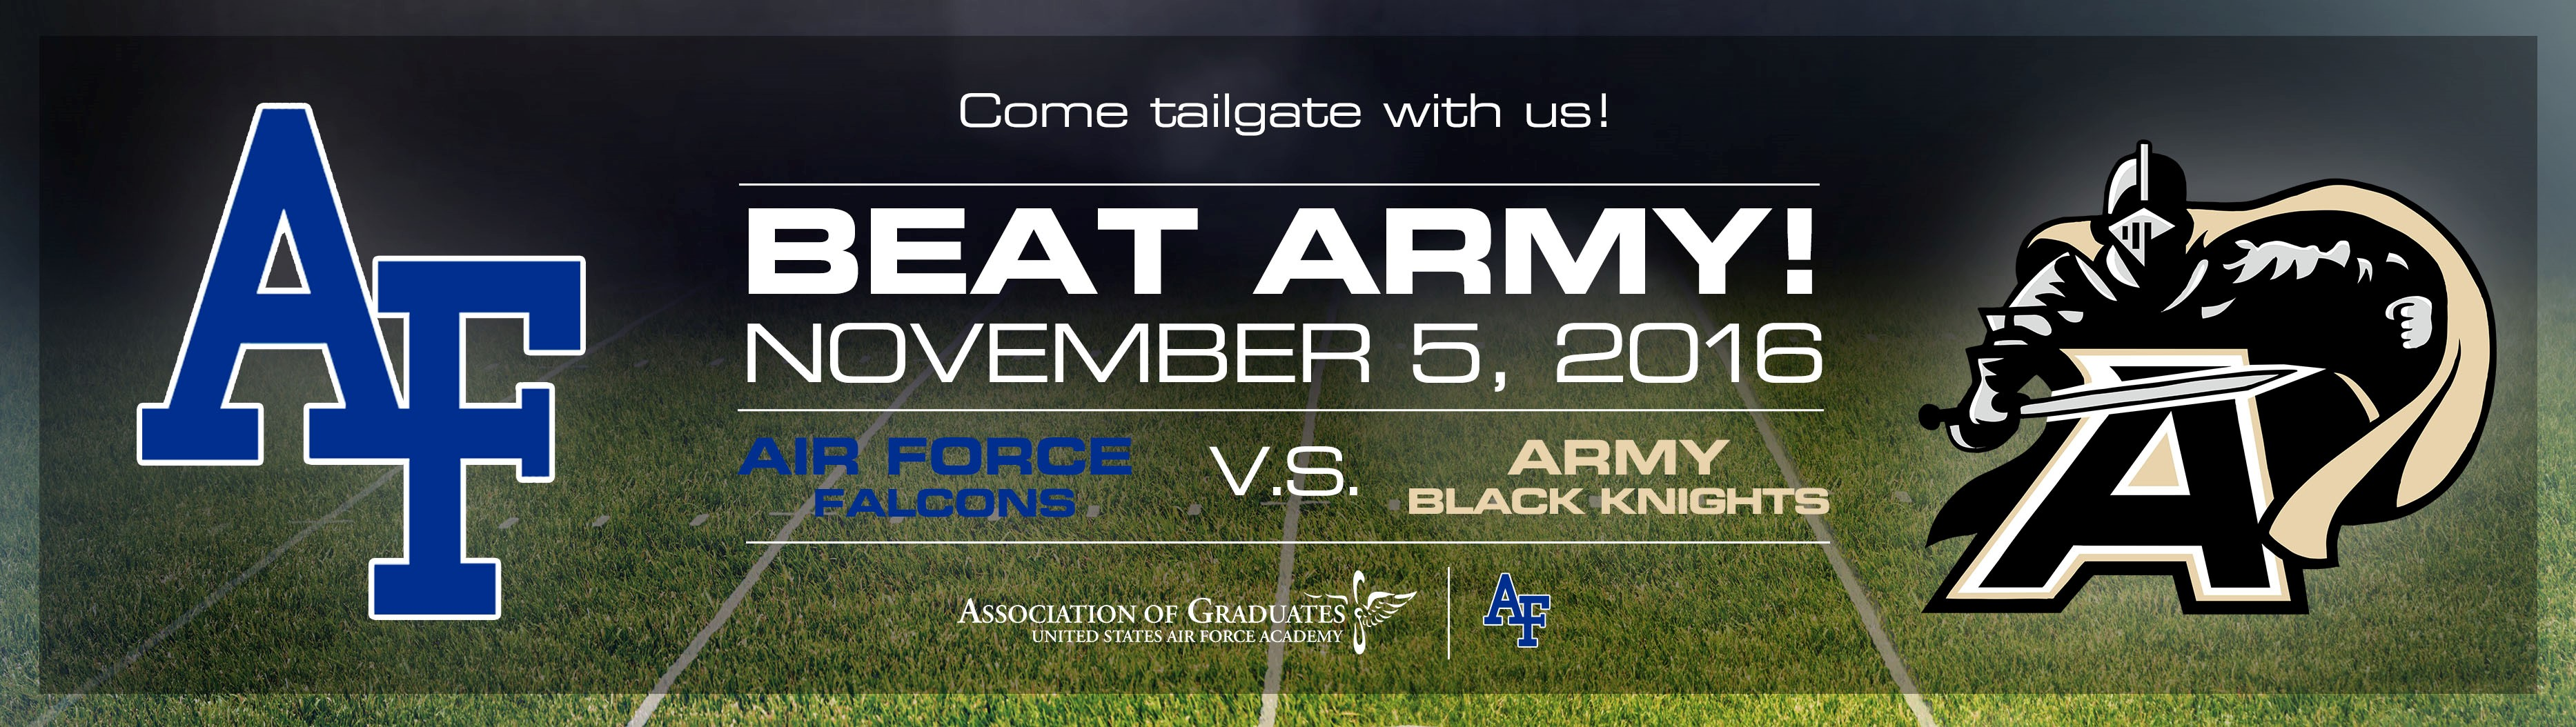 Air Force-Army Tailgate